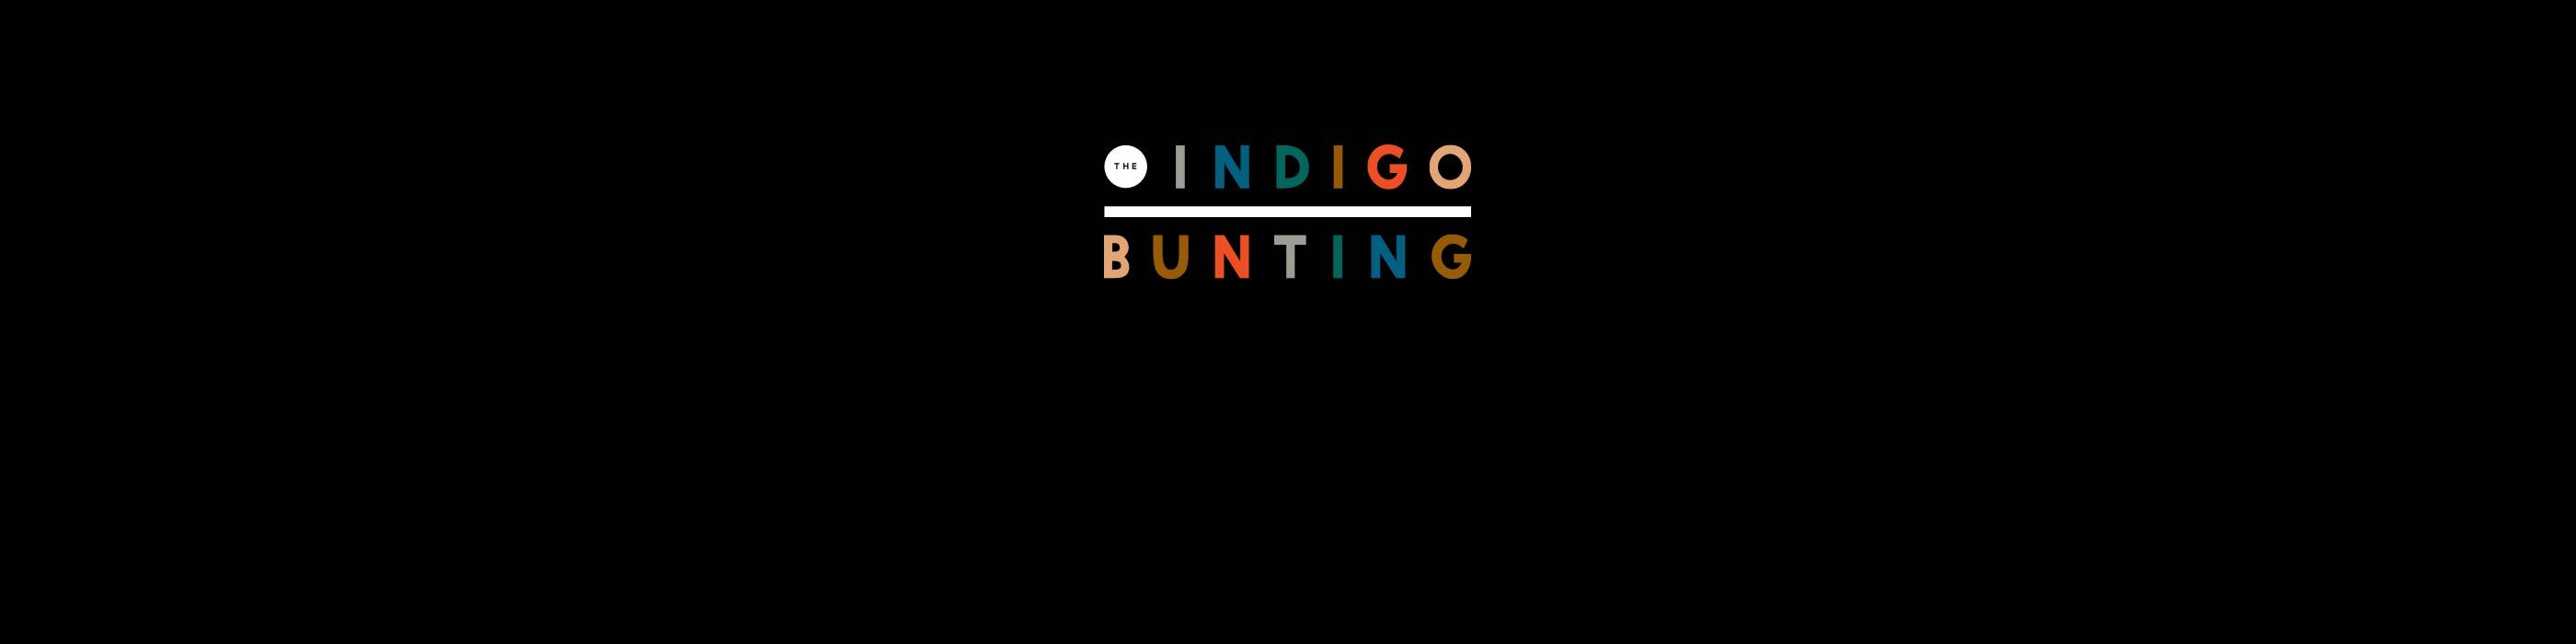 The Indigo Bunting for Paperless Post